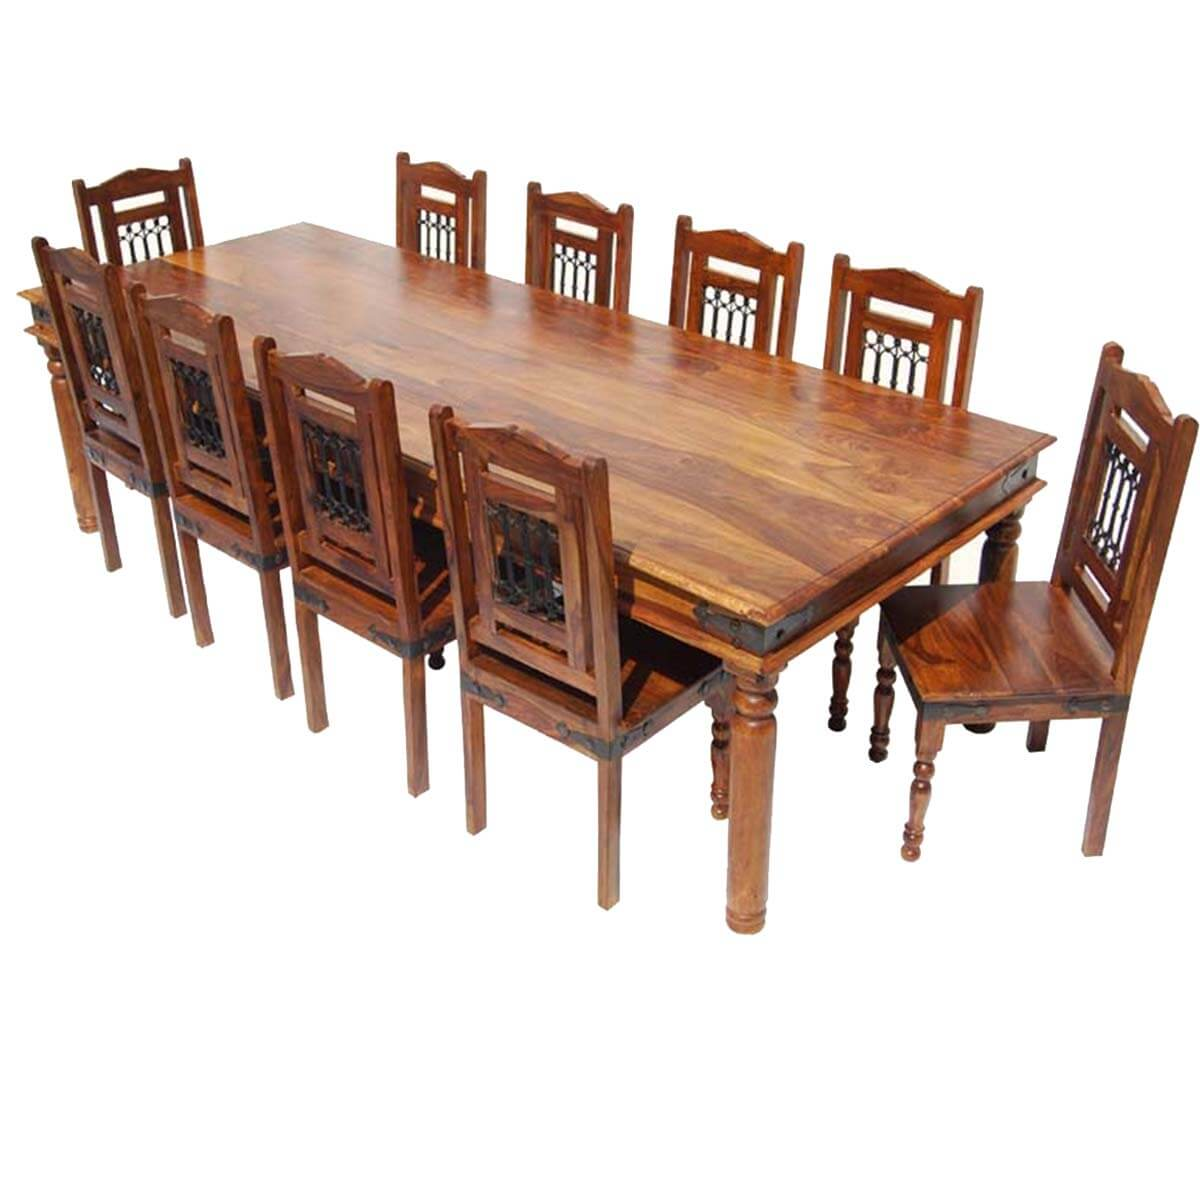 arrivals solid wood large rustic dining room table chair sideboard set